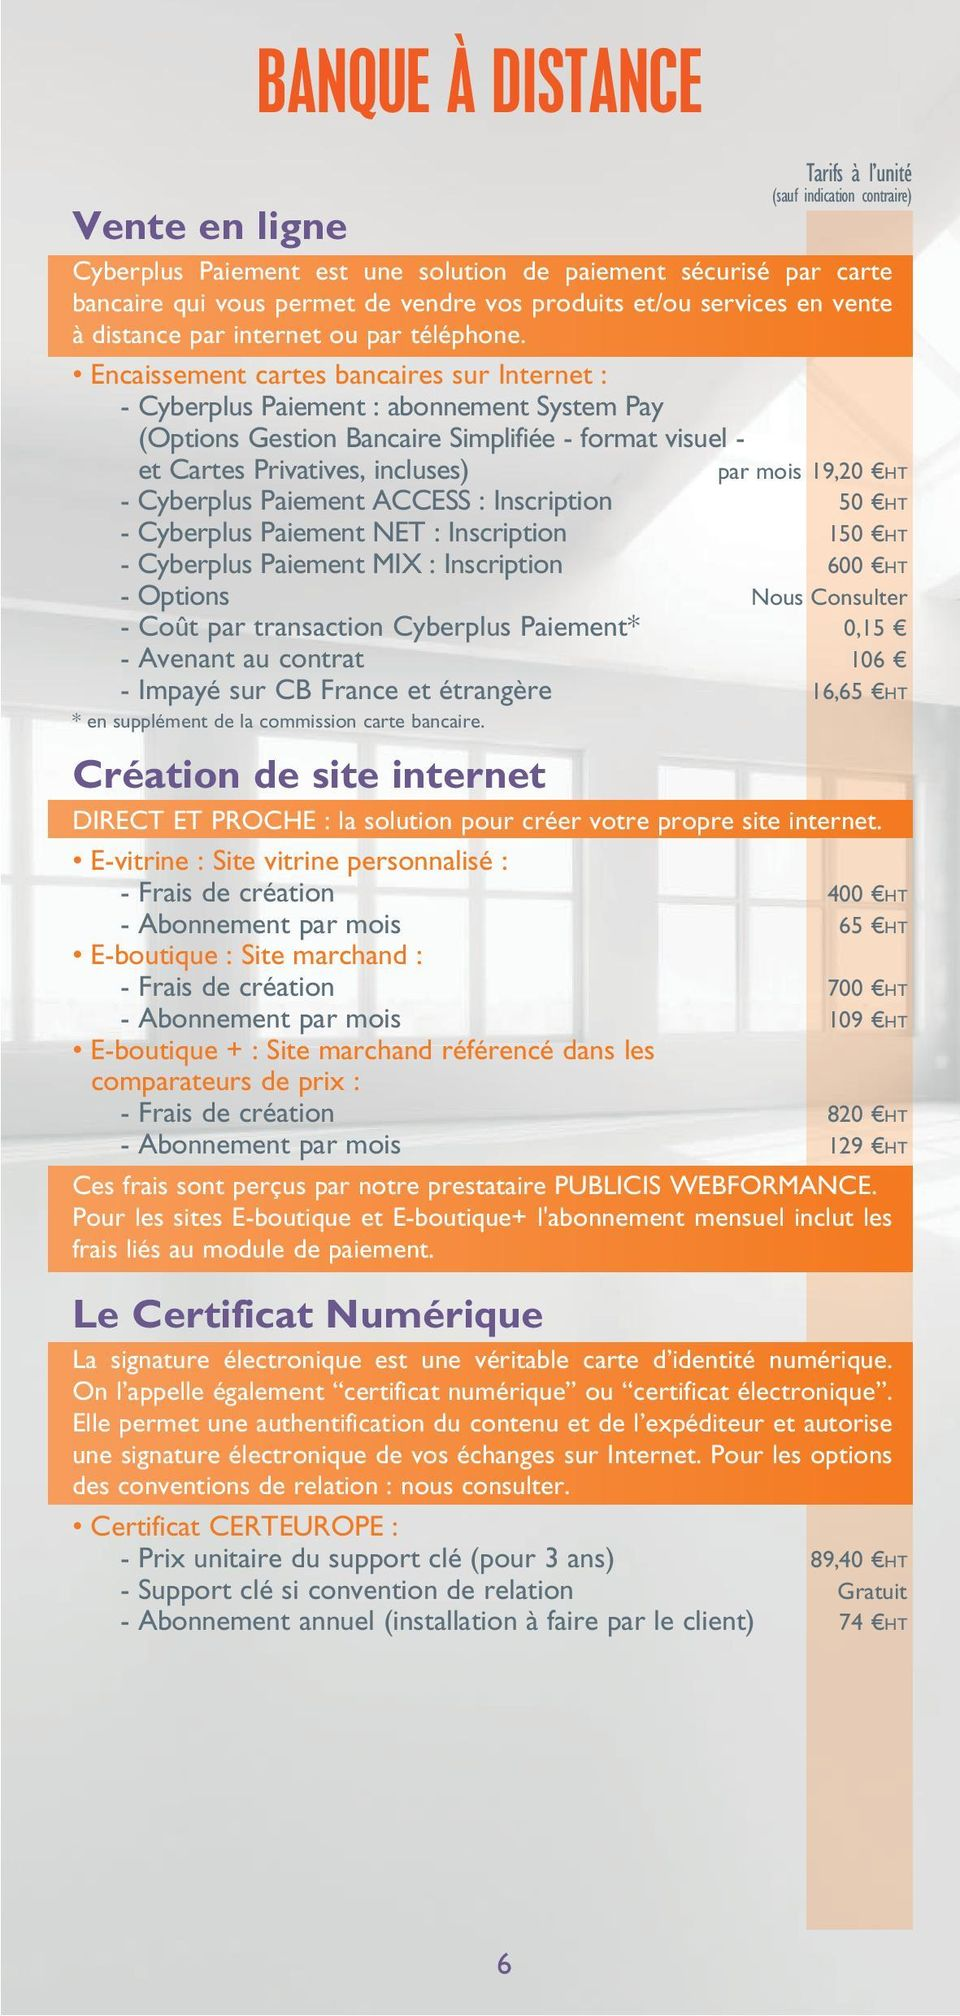 Encaissement cartes bancaires sur Internet : - Cyberplus Paiement : abonnement System Pay (Options Gestion Bancaire Simplifiée - format visuel - et Cartes Privatives, incluses) par mois 19,20 HT -